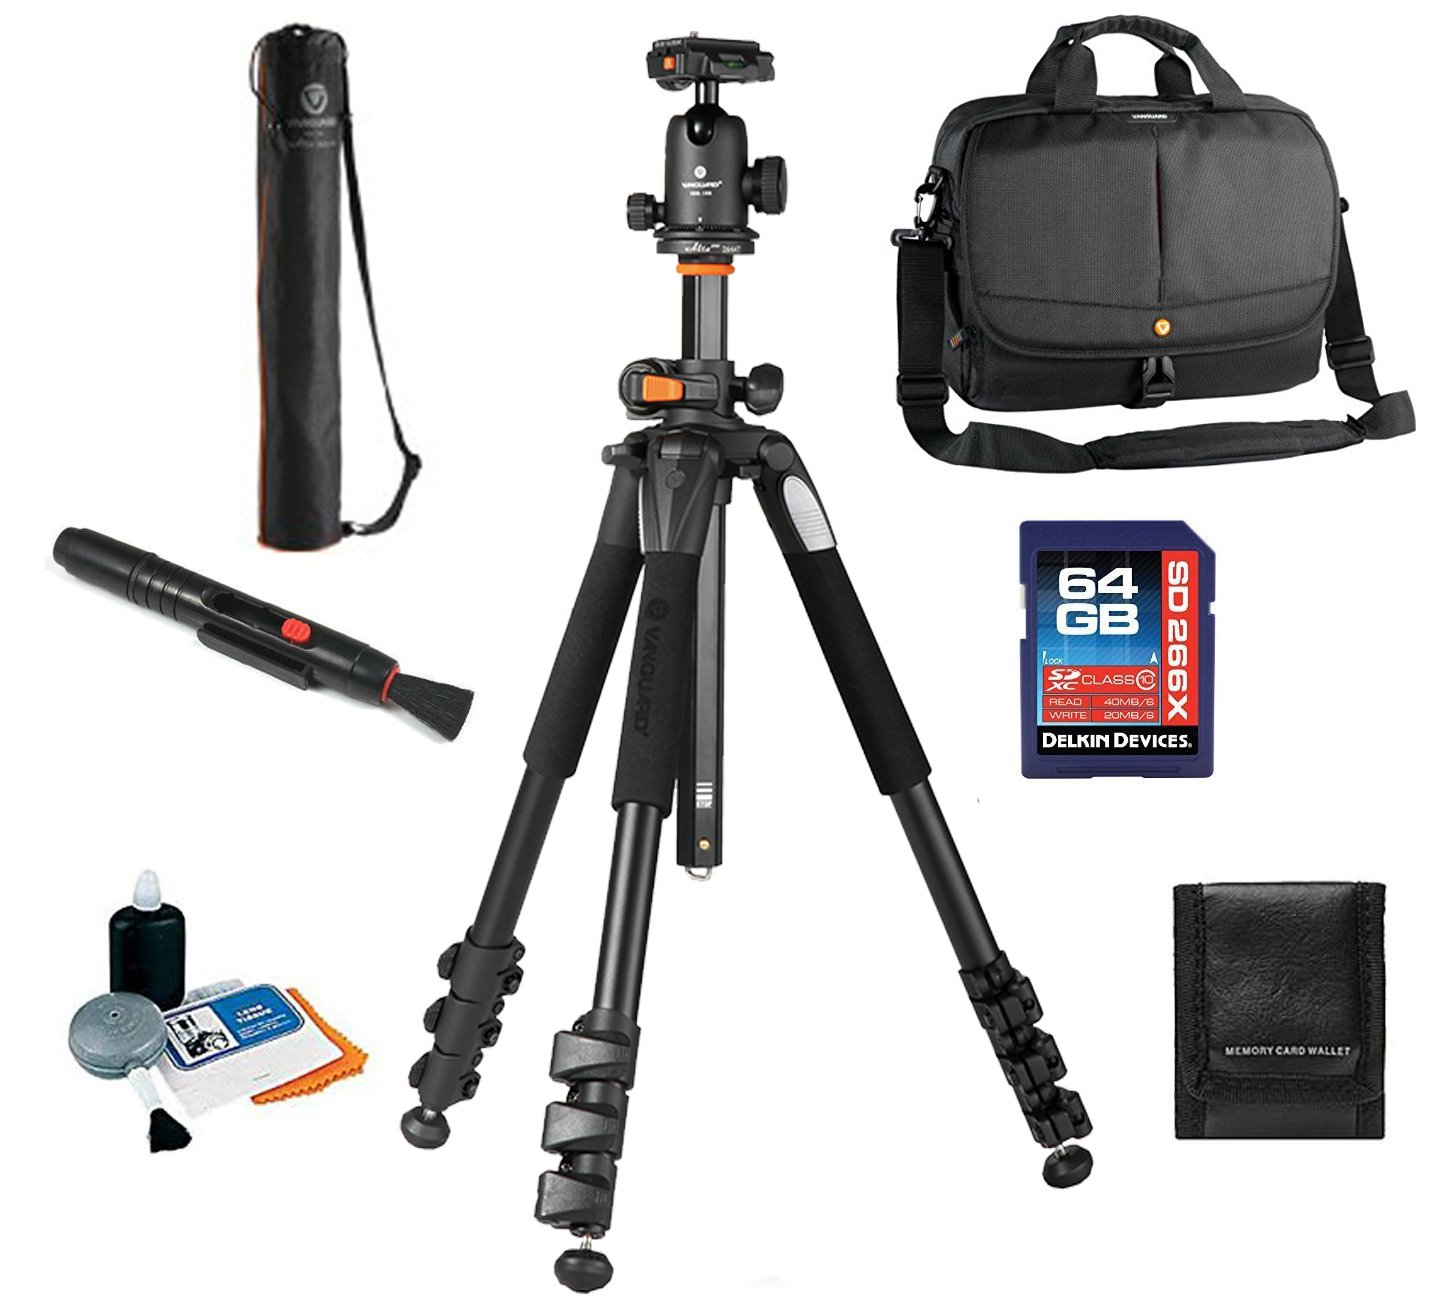 Vanguard 2GO 33 Bag + Vanguard Alta Pro 264AB 4-Section Aluminum Tripod with SBH-100 Ball Head + Vanguard Case, 64GB SDXC Card, Cleaning Kit, Lens Pen, Memory Card Wallet by Vanguard